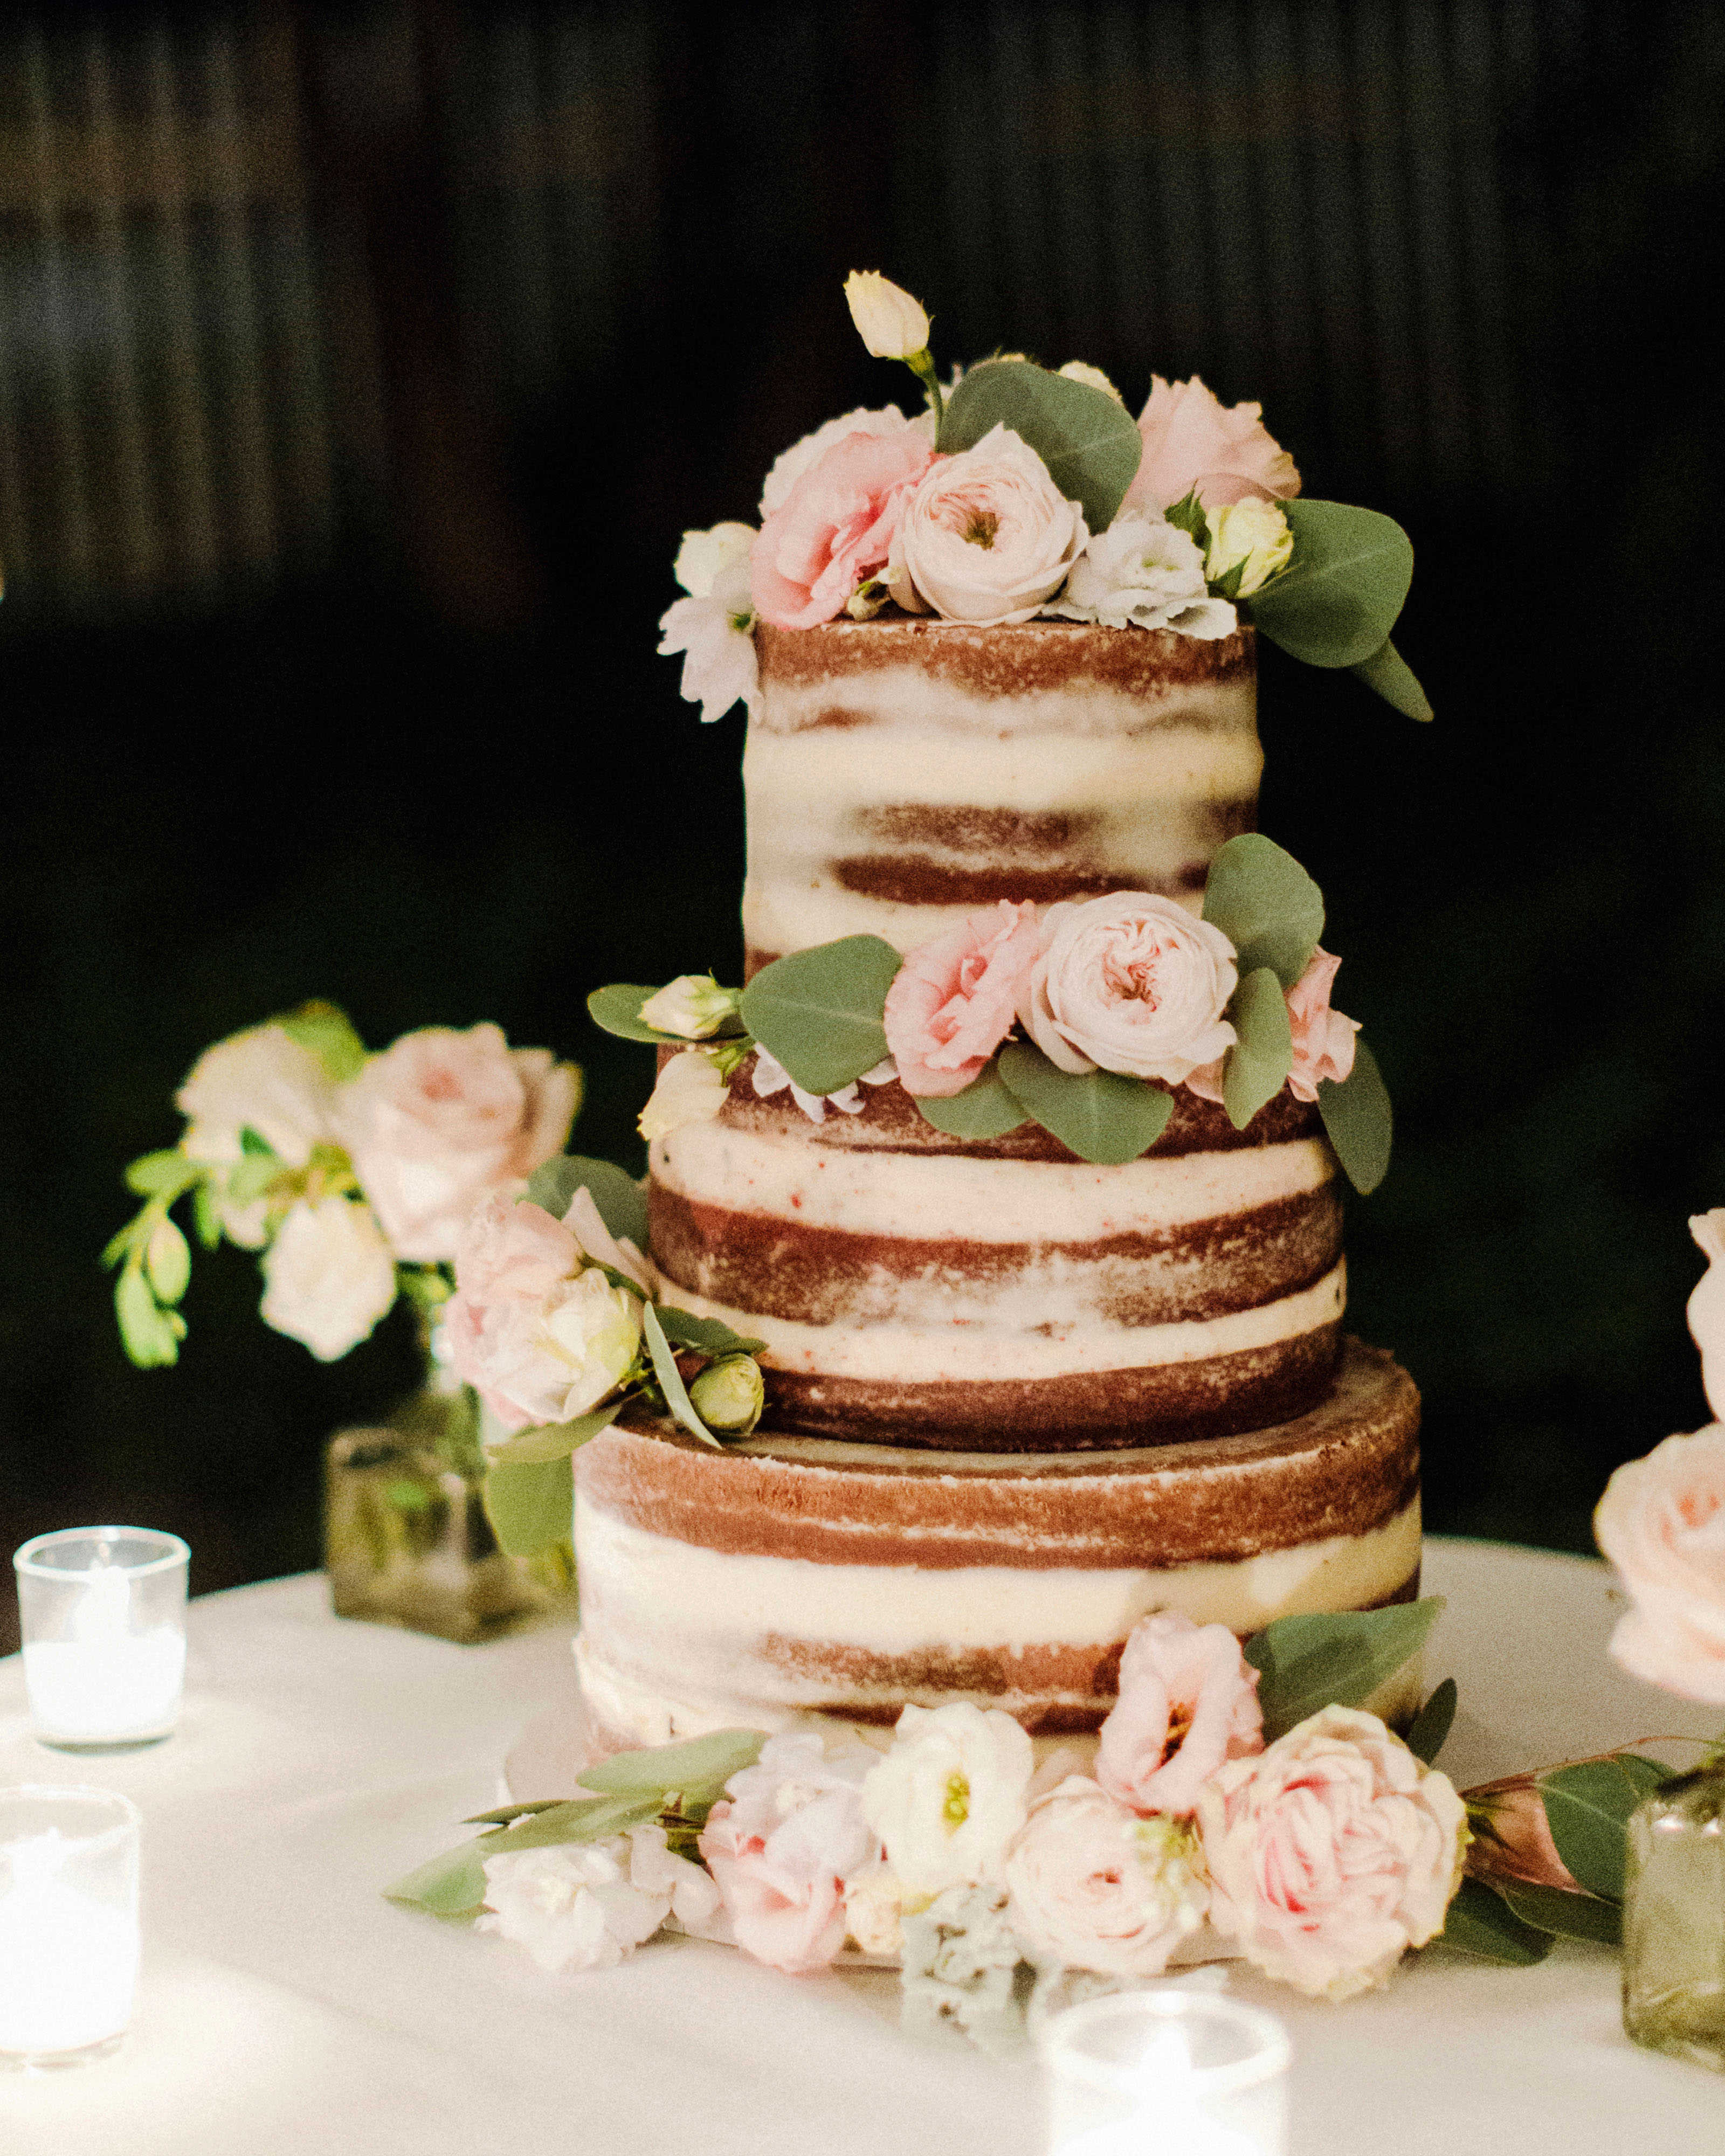 eden jack wedding cake